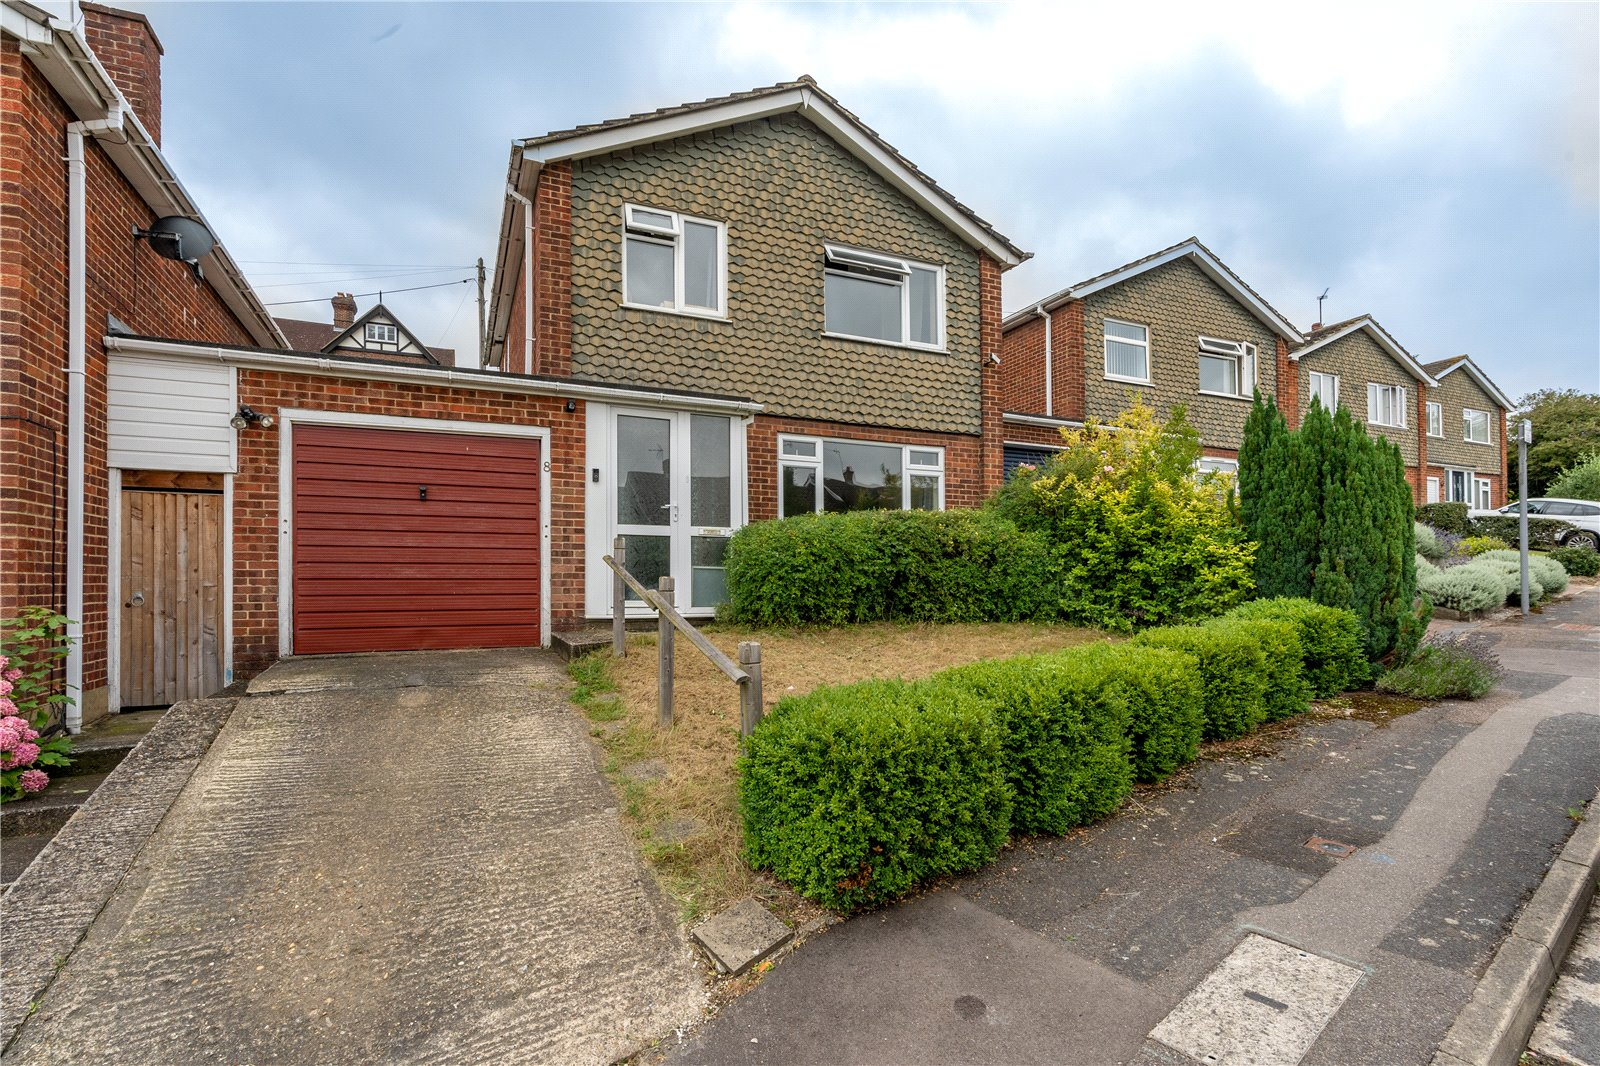 3 bed house for sale in Underwood Close, Maidstone, ME15